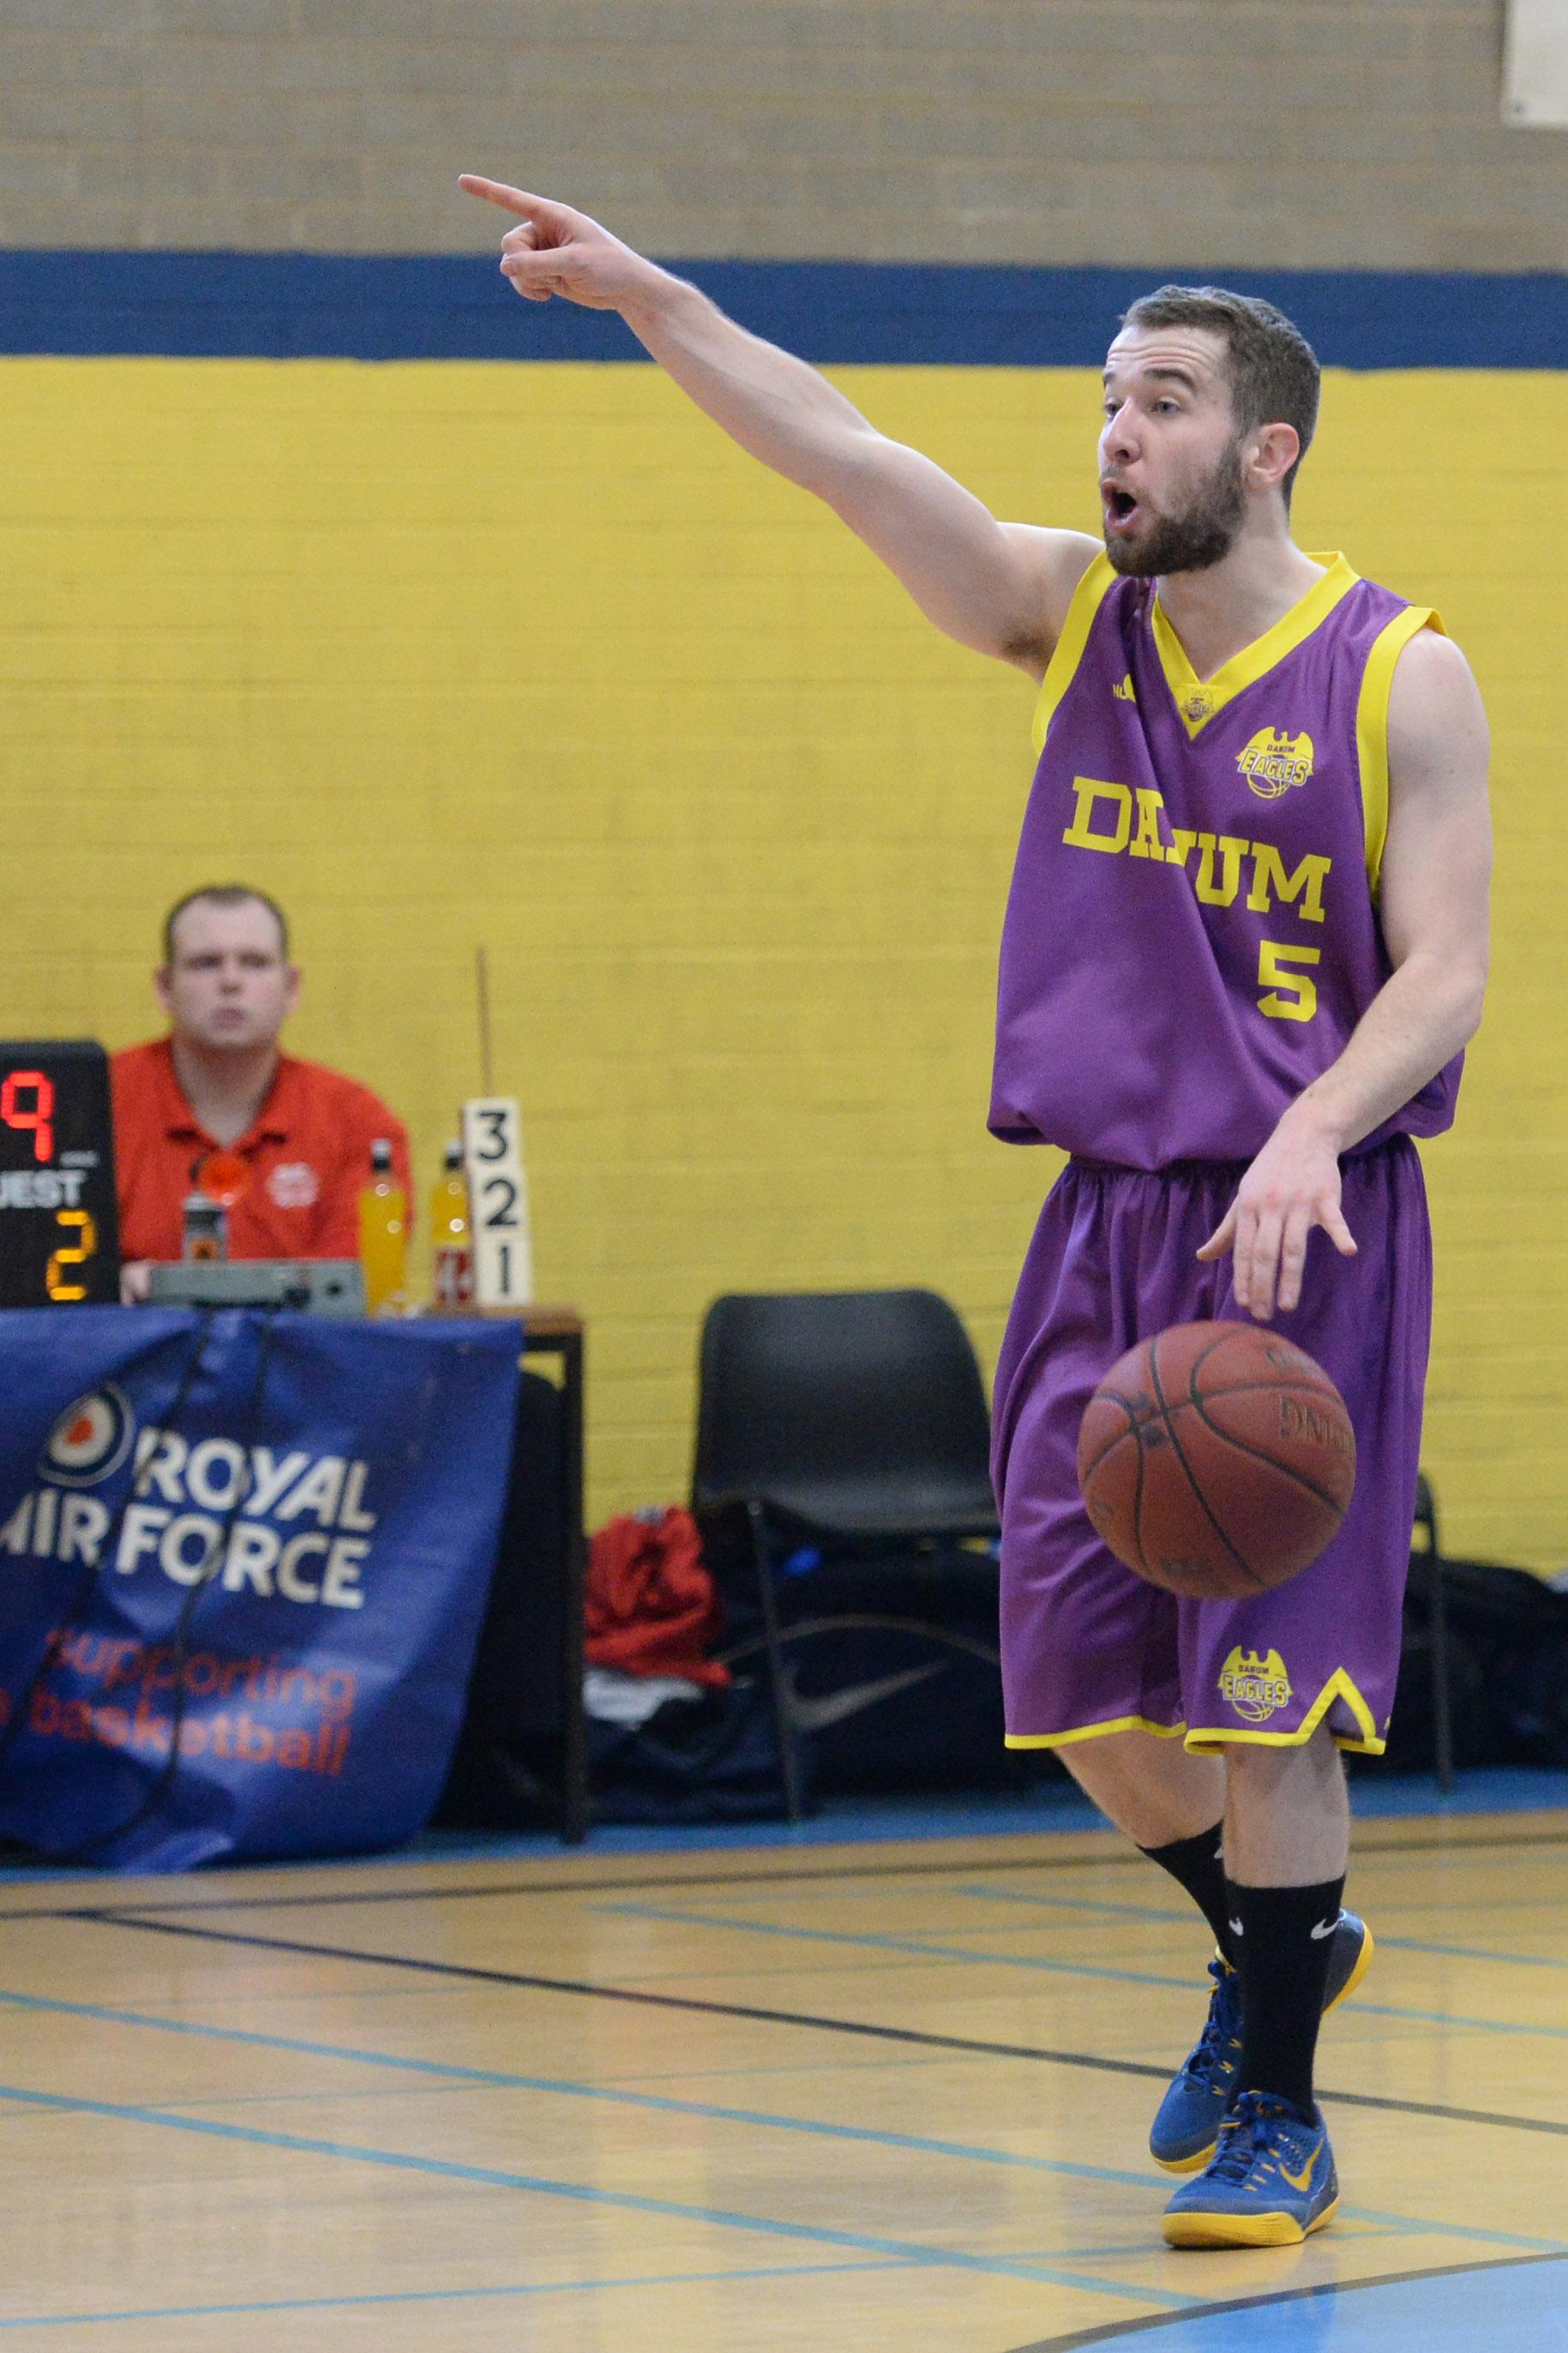 Basketball: Doncaster Eagles seal 99-63 win over Mansfield as Walsh stars - Doncaster Free Press